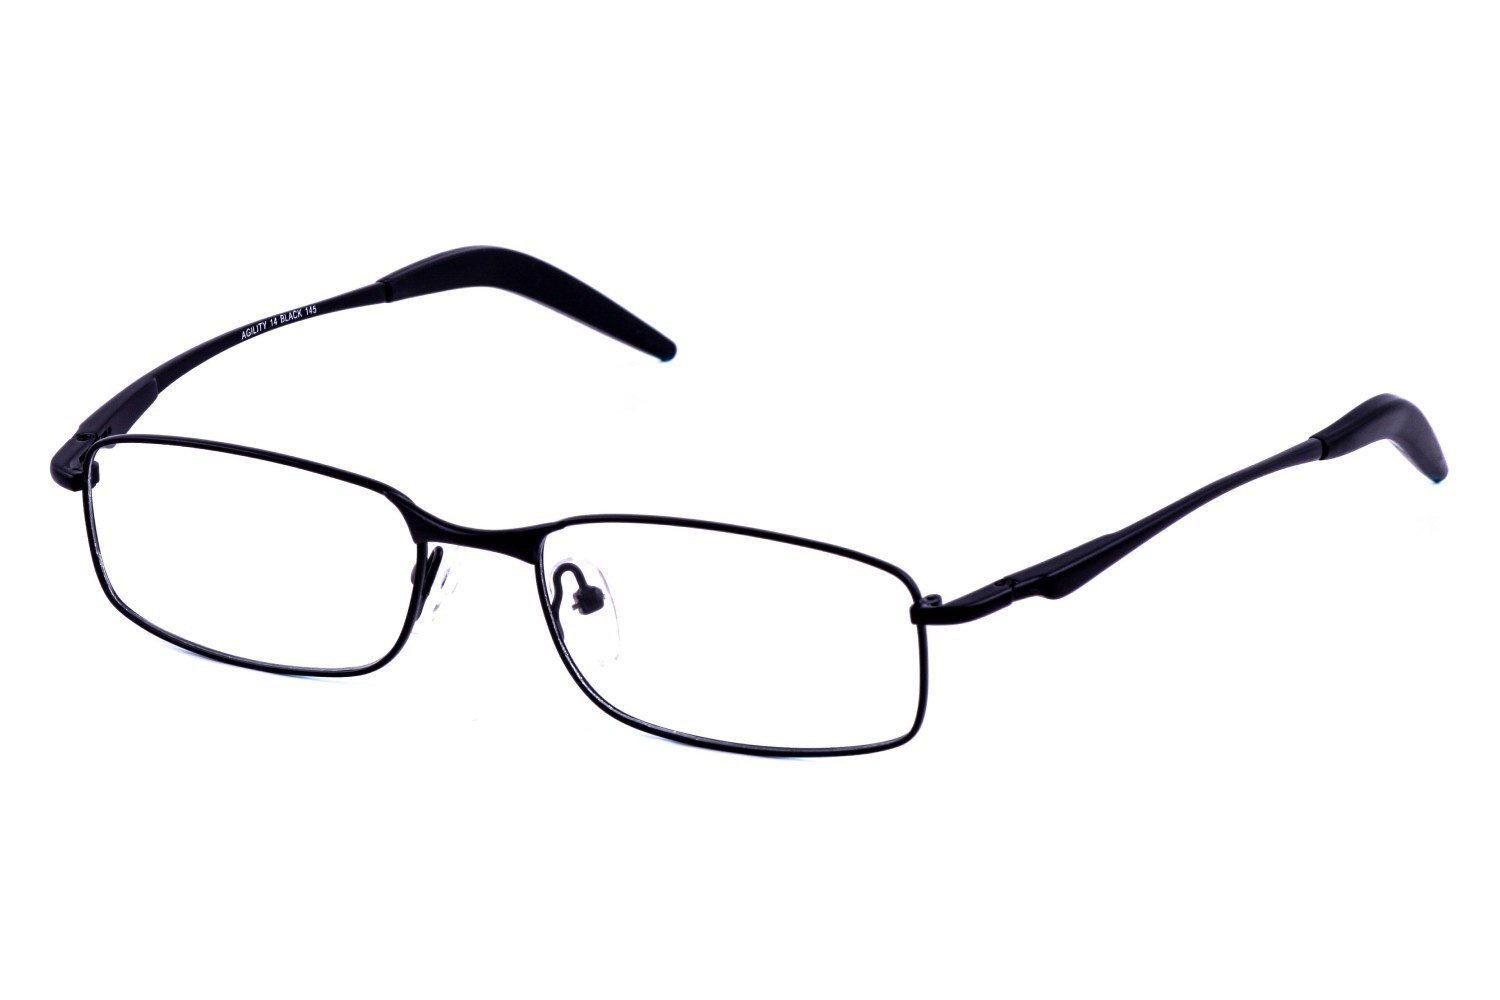 Agility 14 Prescription Eyeglasses Frames